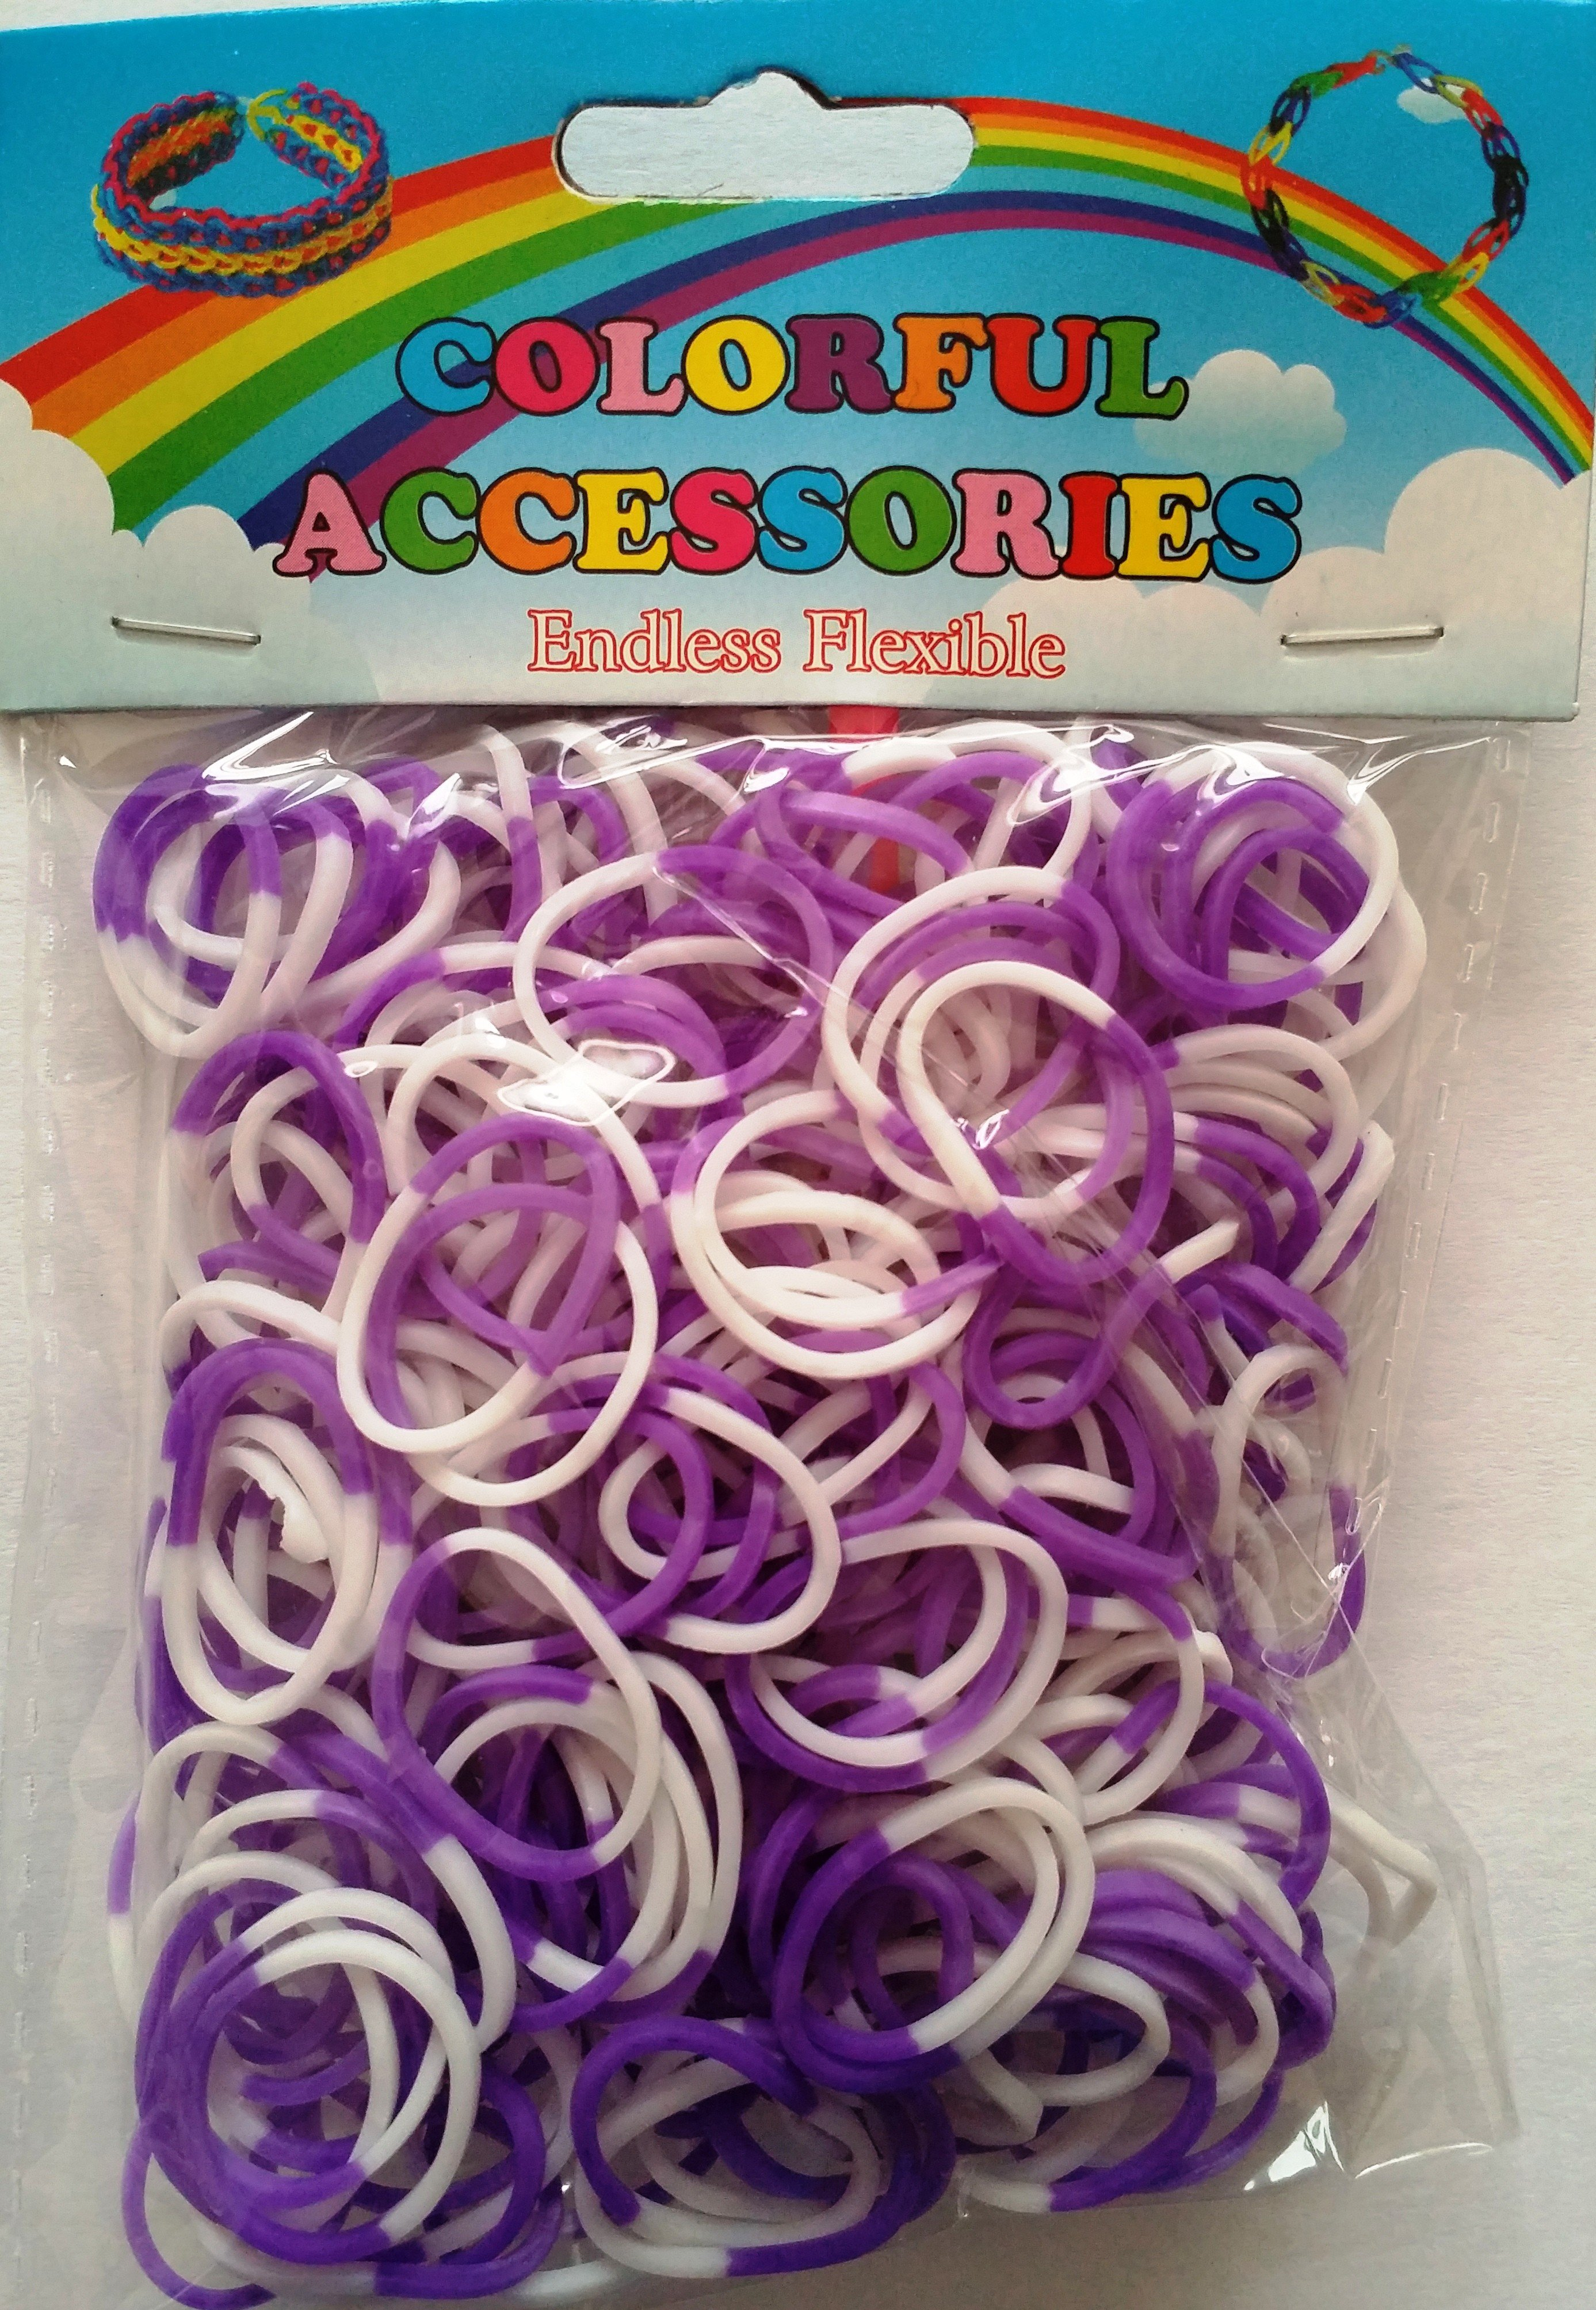 NEW 2 Tone Loom Bands- (Purple And White) 300s x 12 Packs